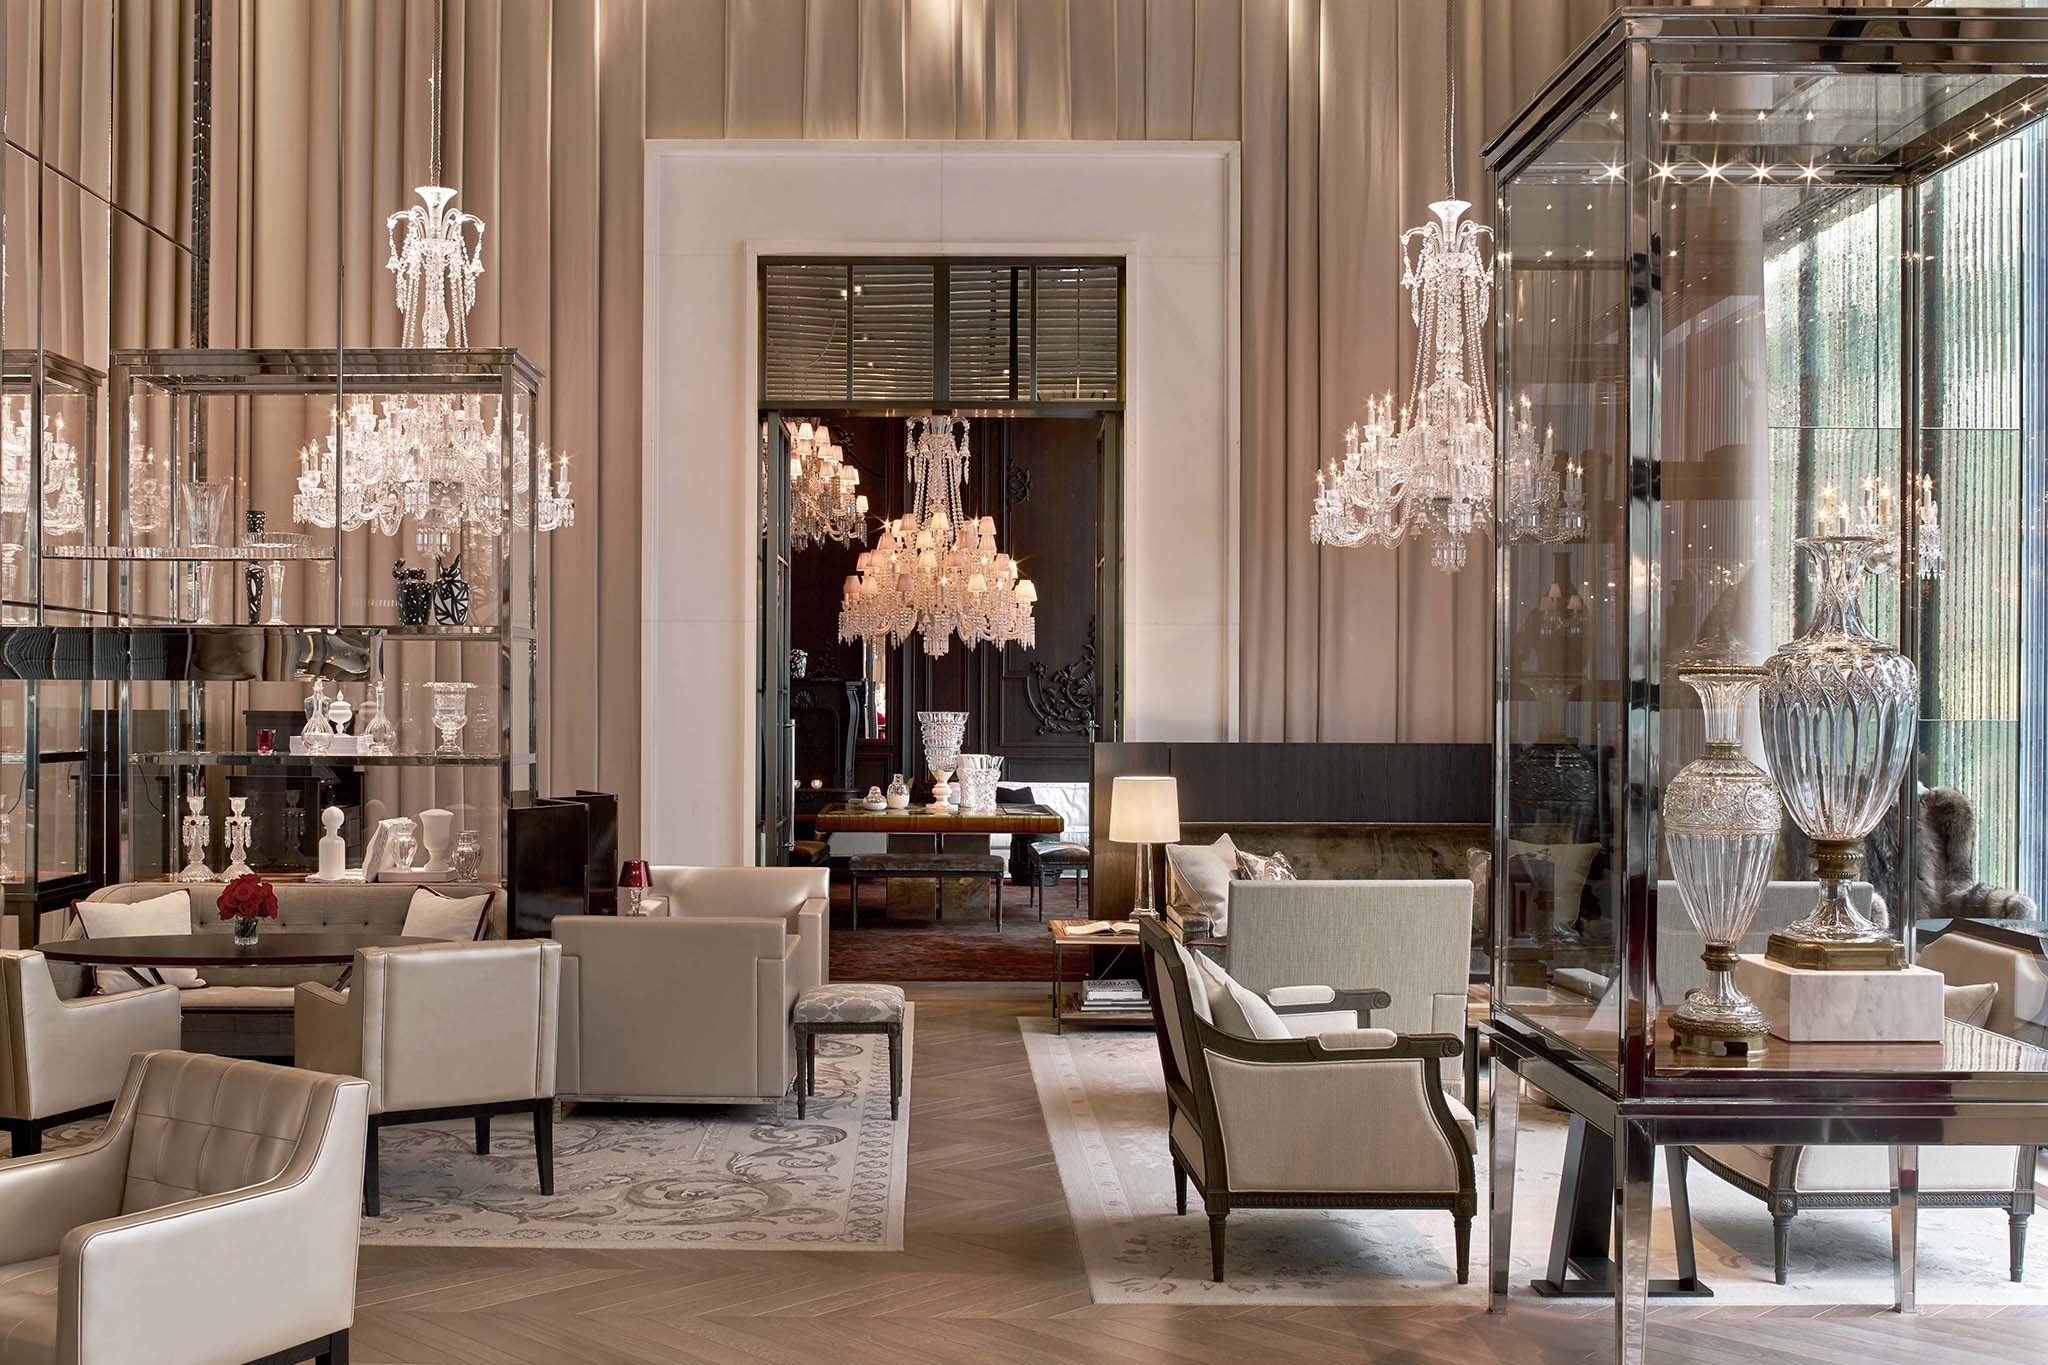 The best luxury hotels in NYC